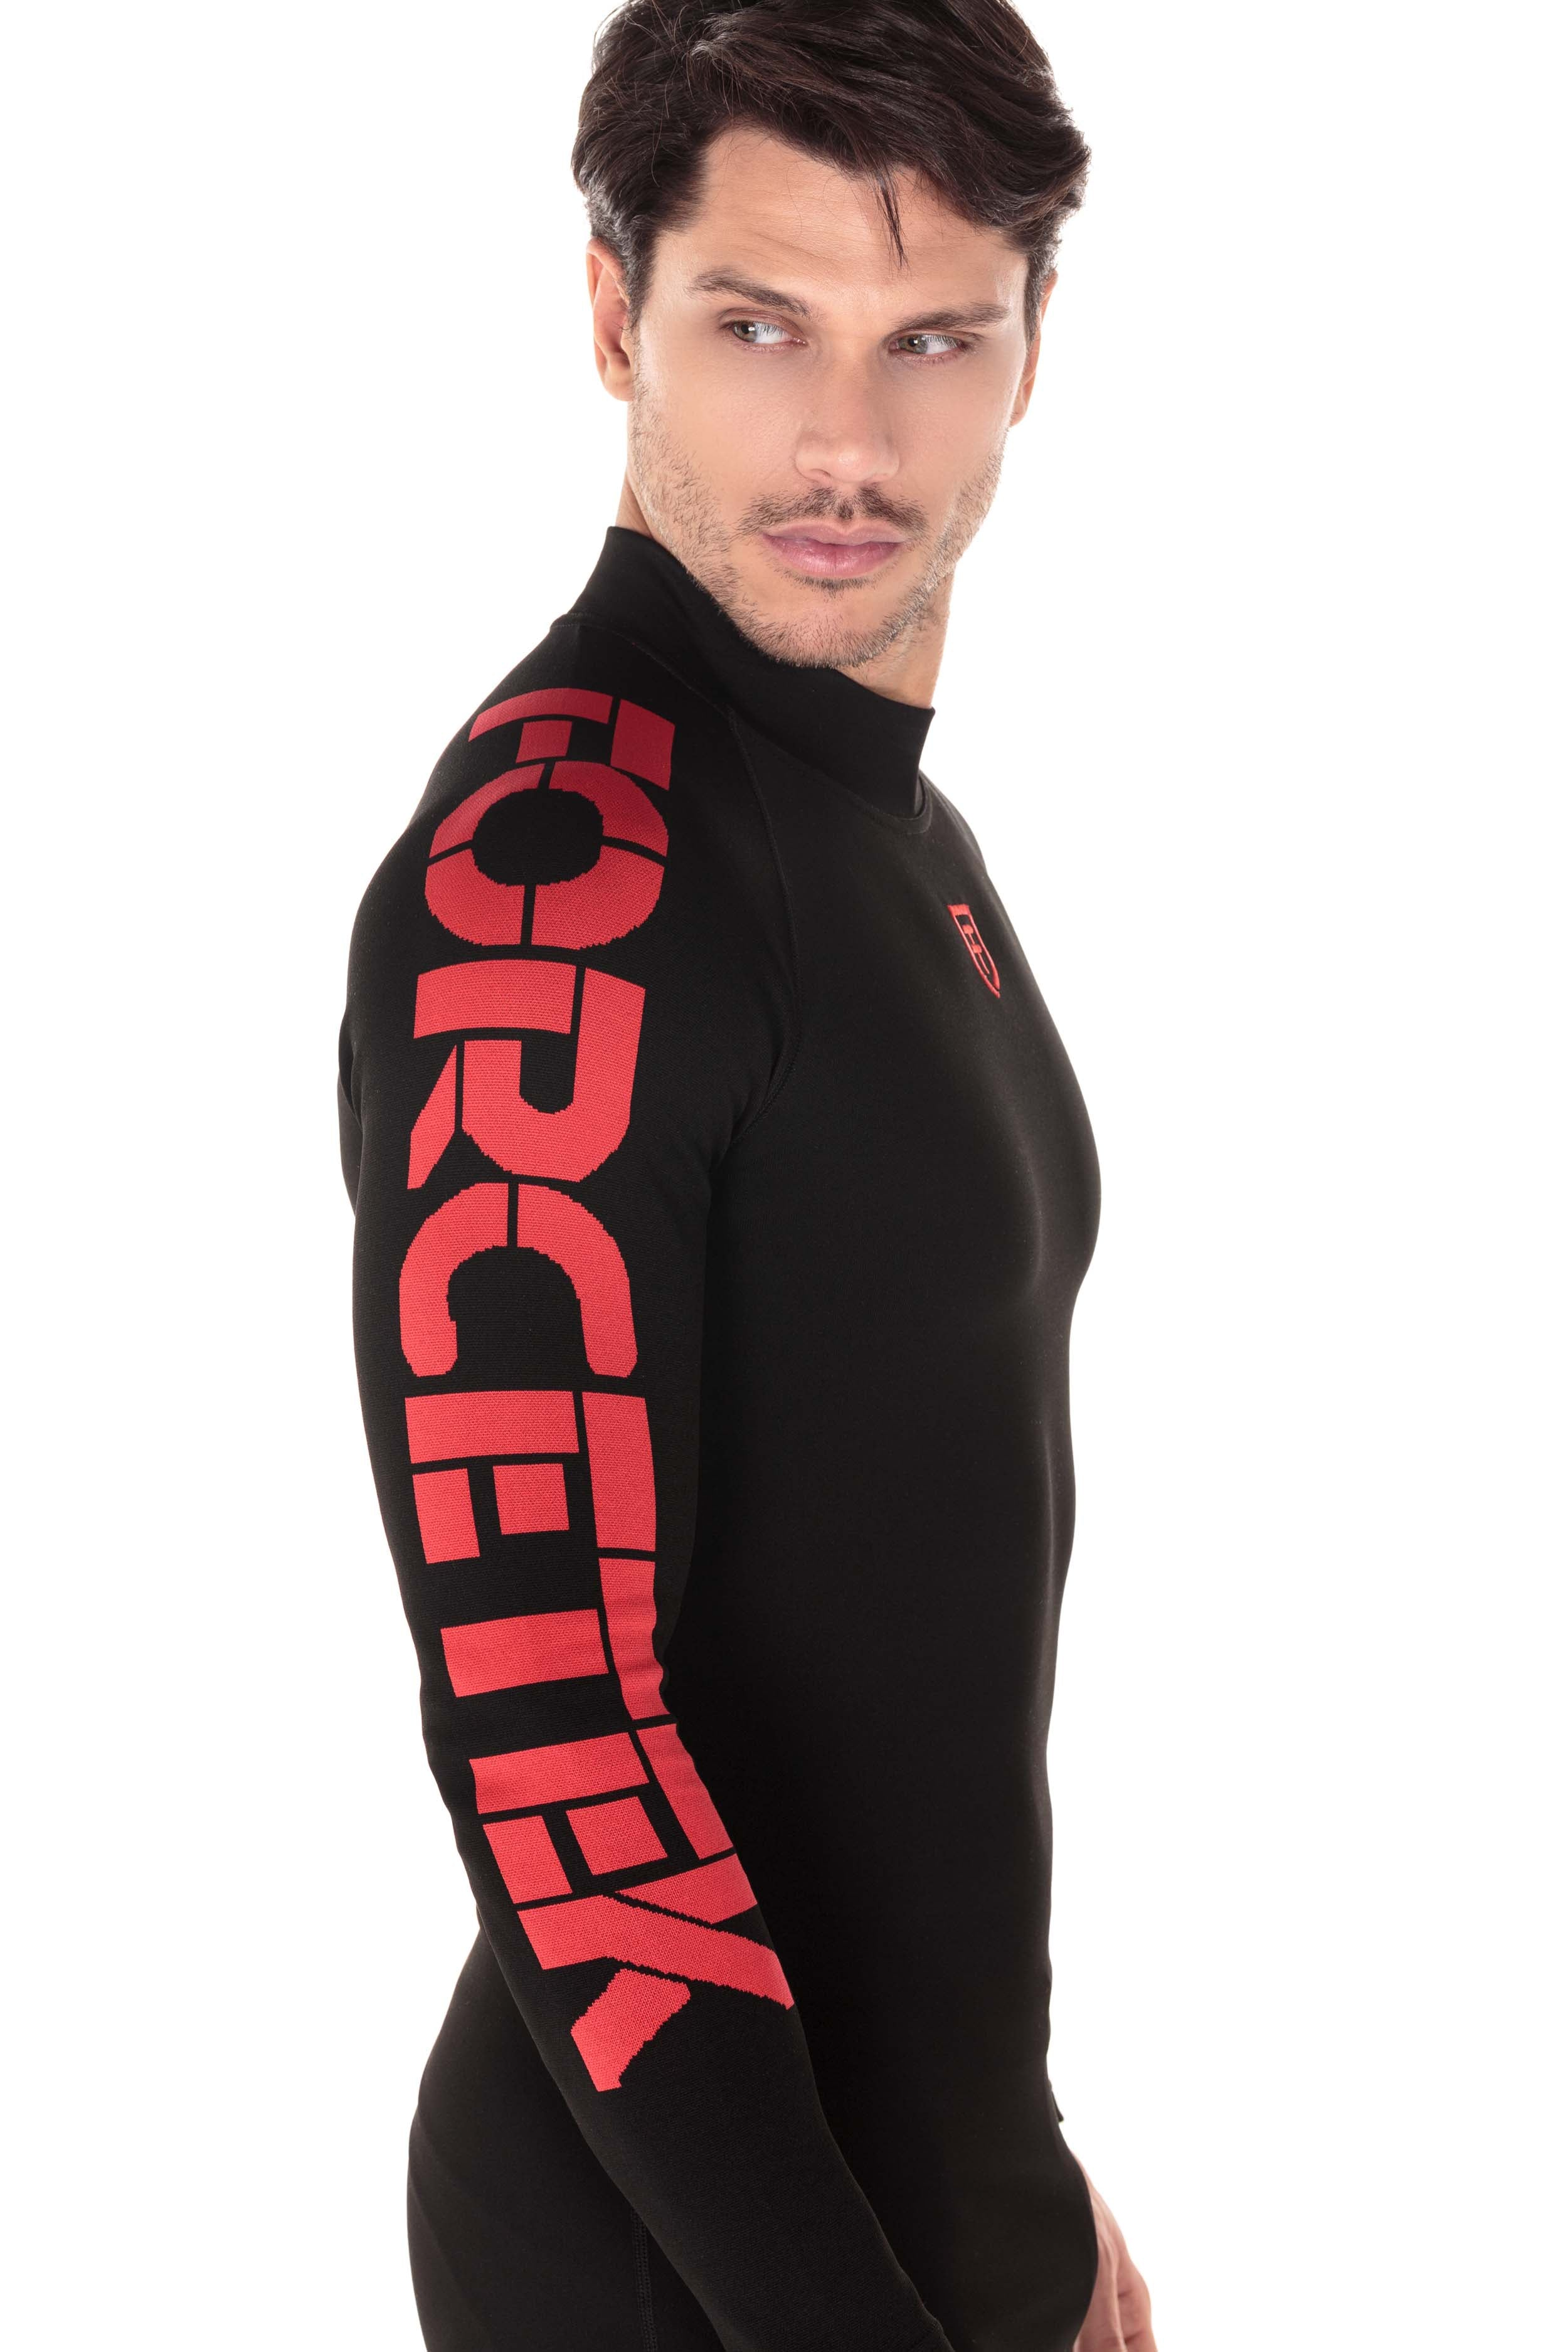 TRAINING thermal shirt